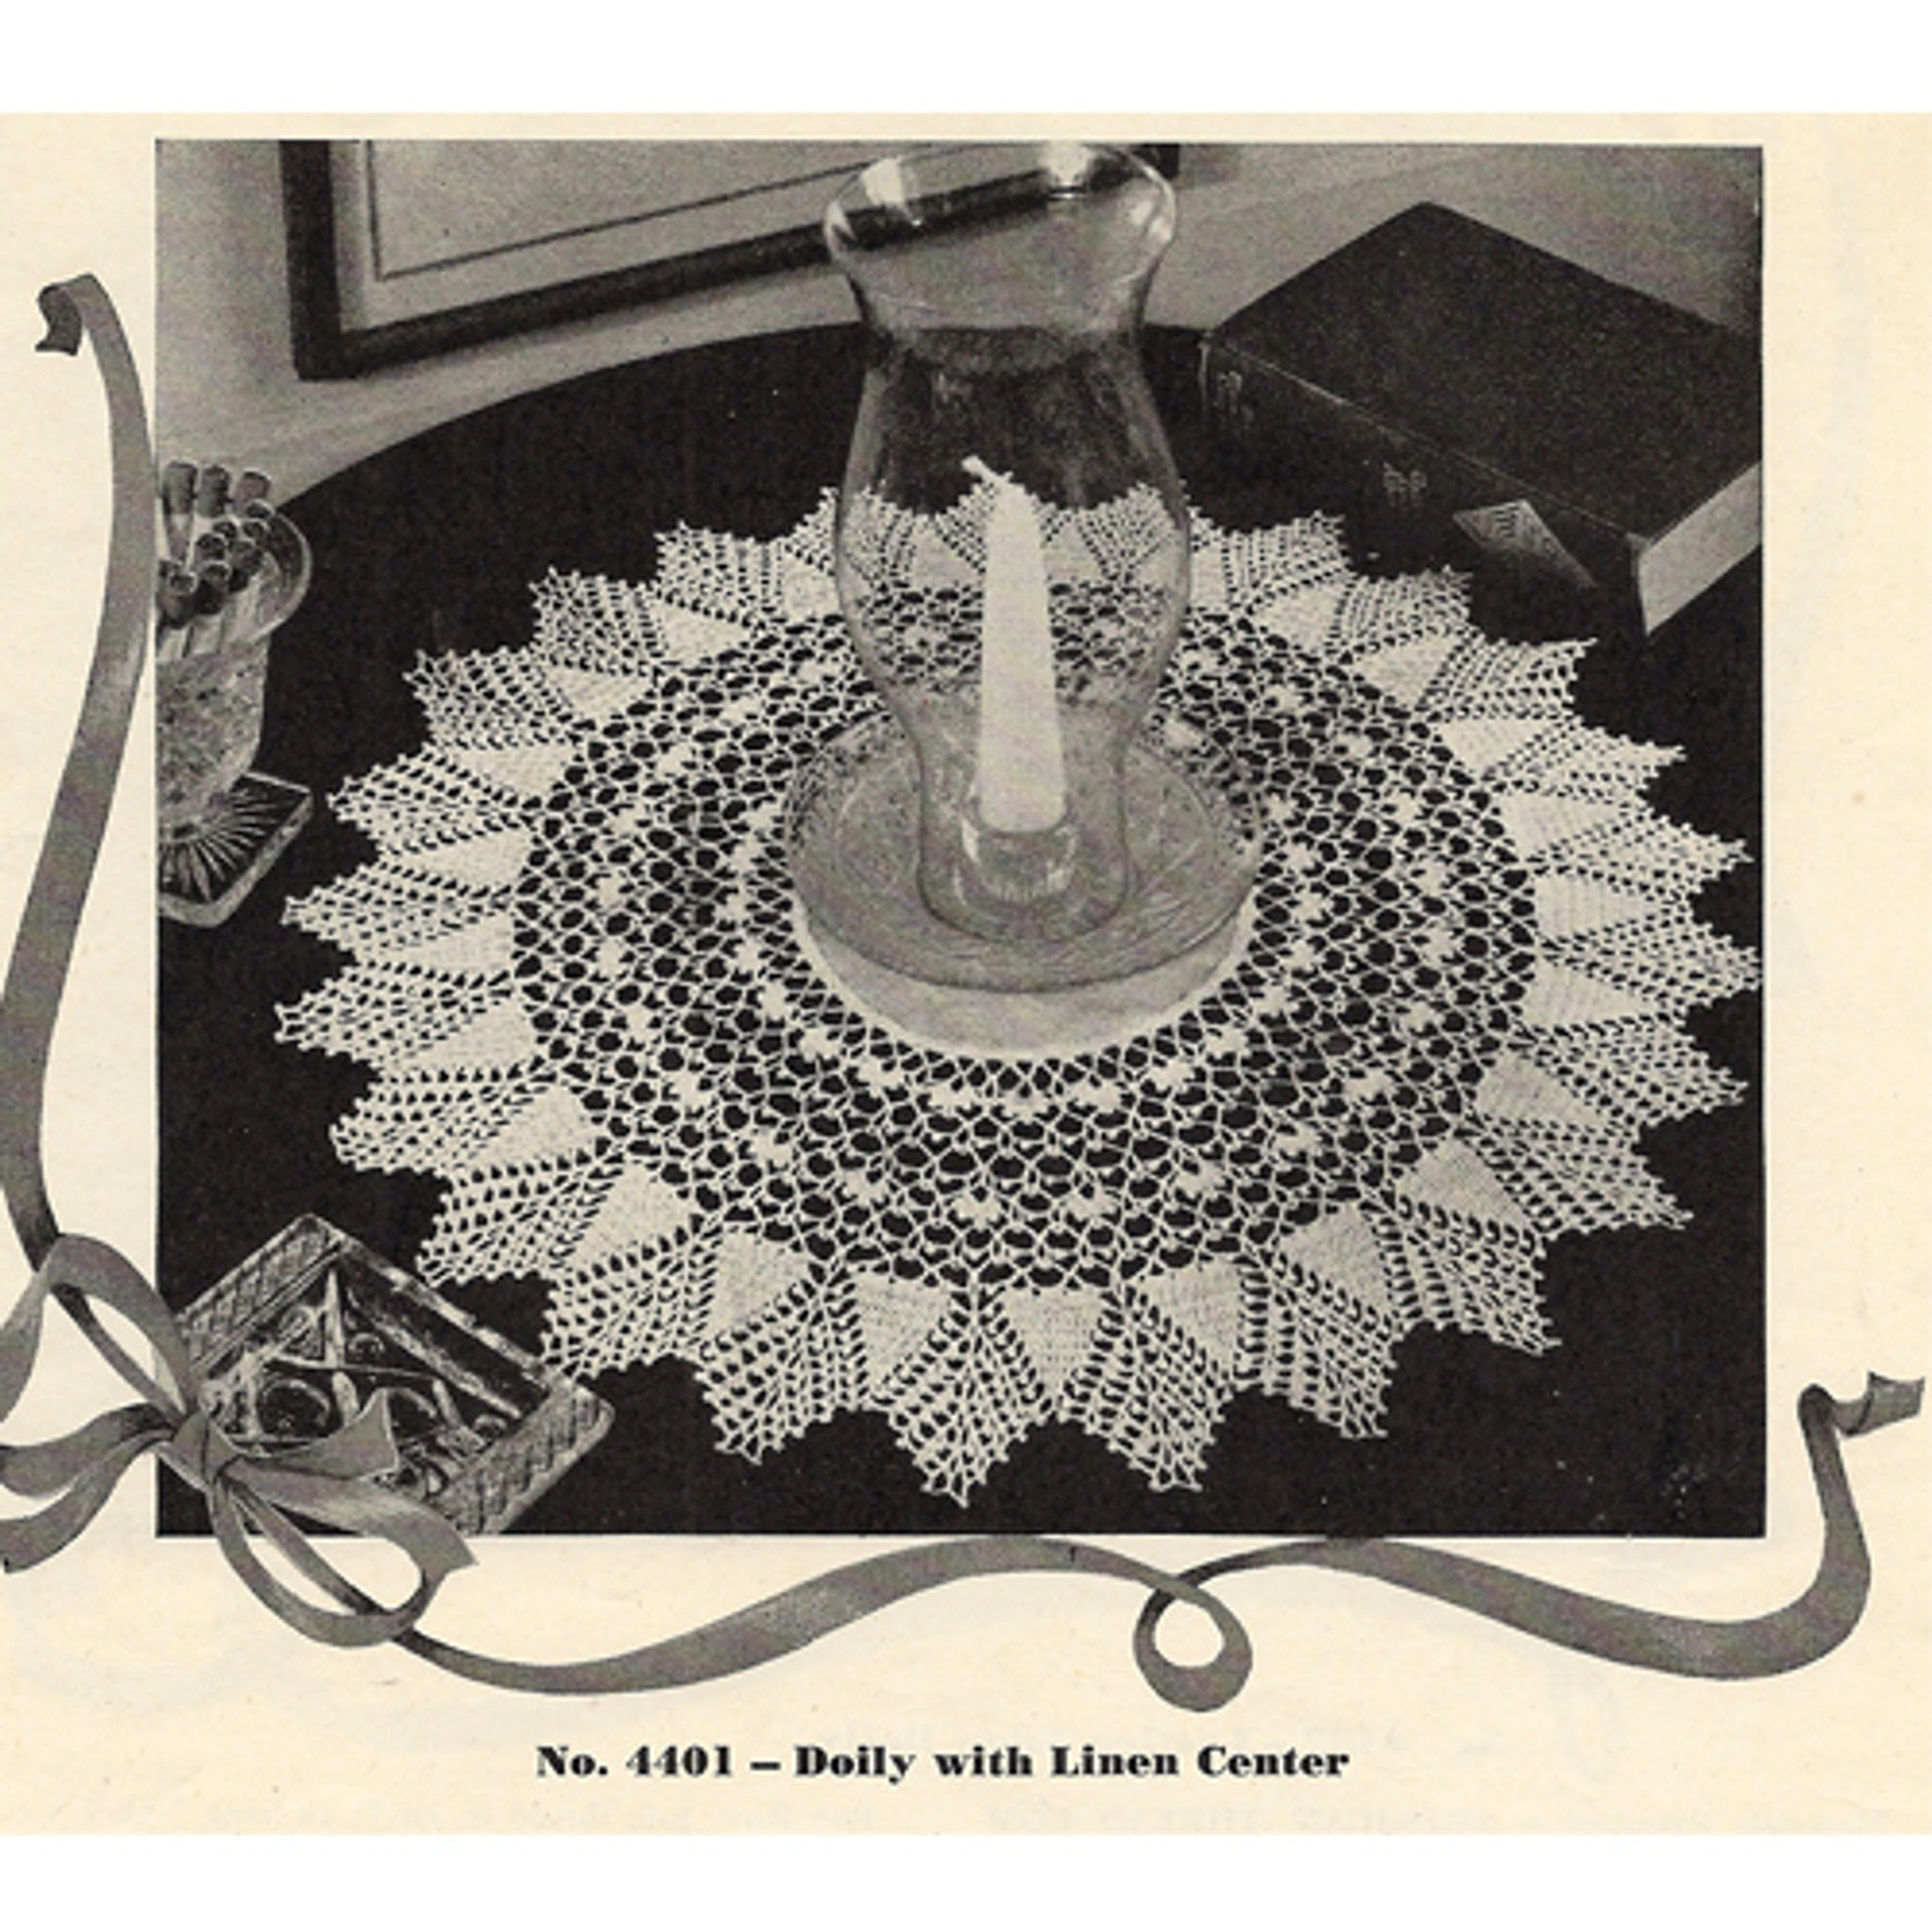 Sunburst Crochet Doily with Linen Center